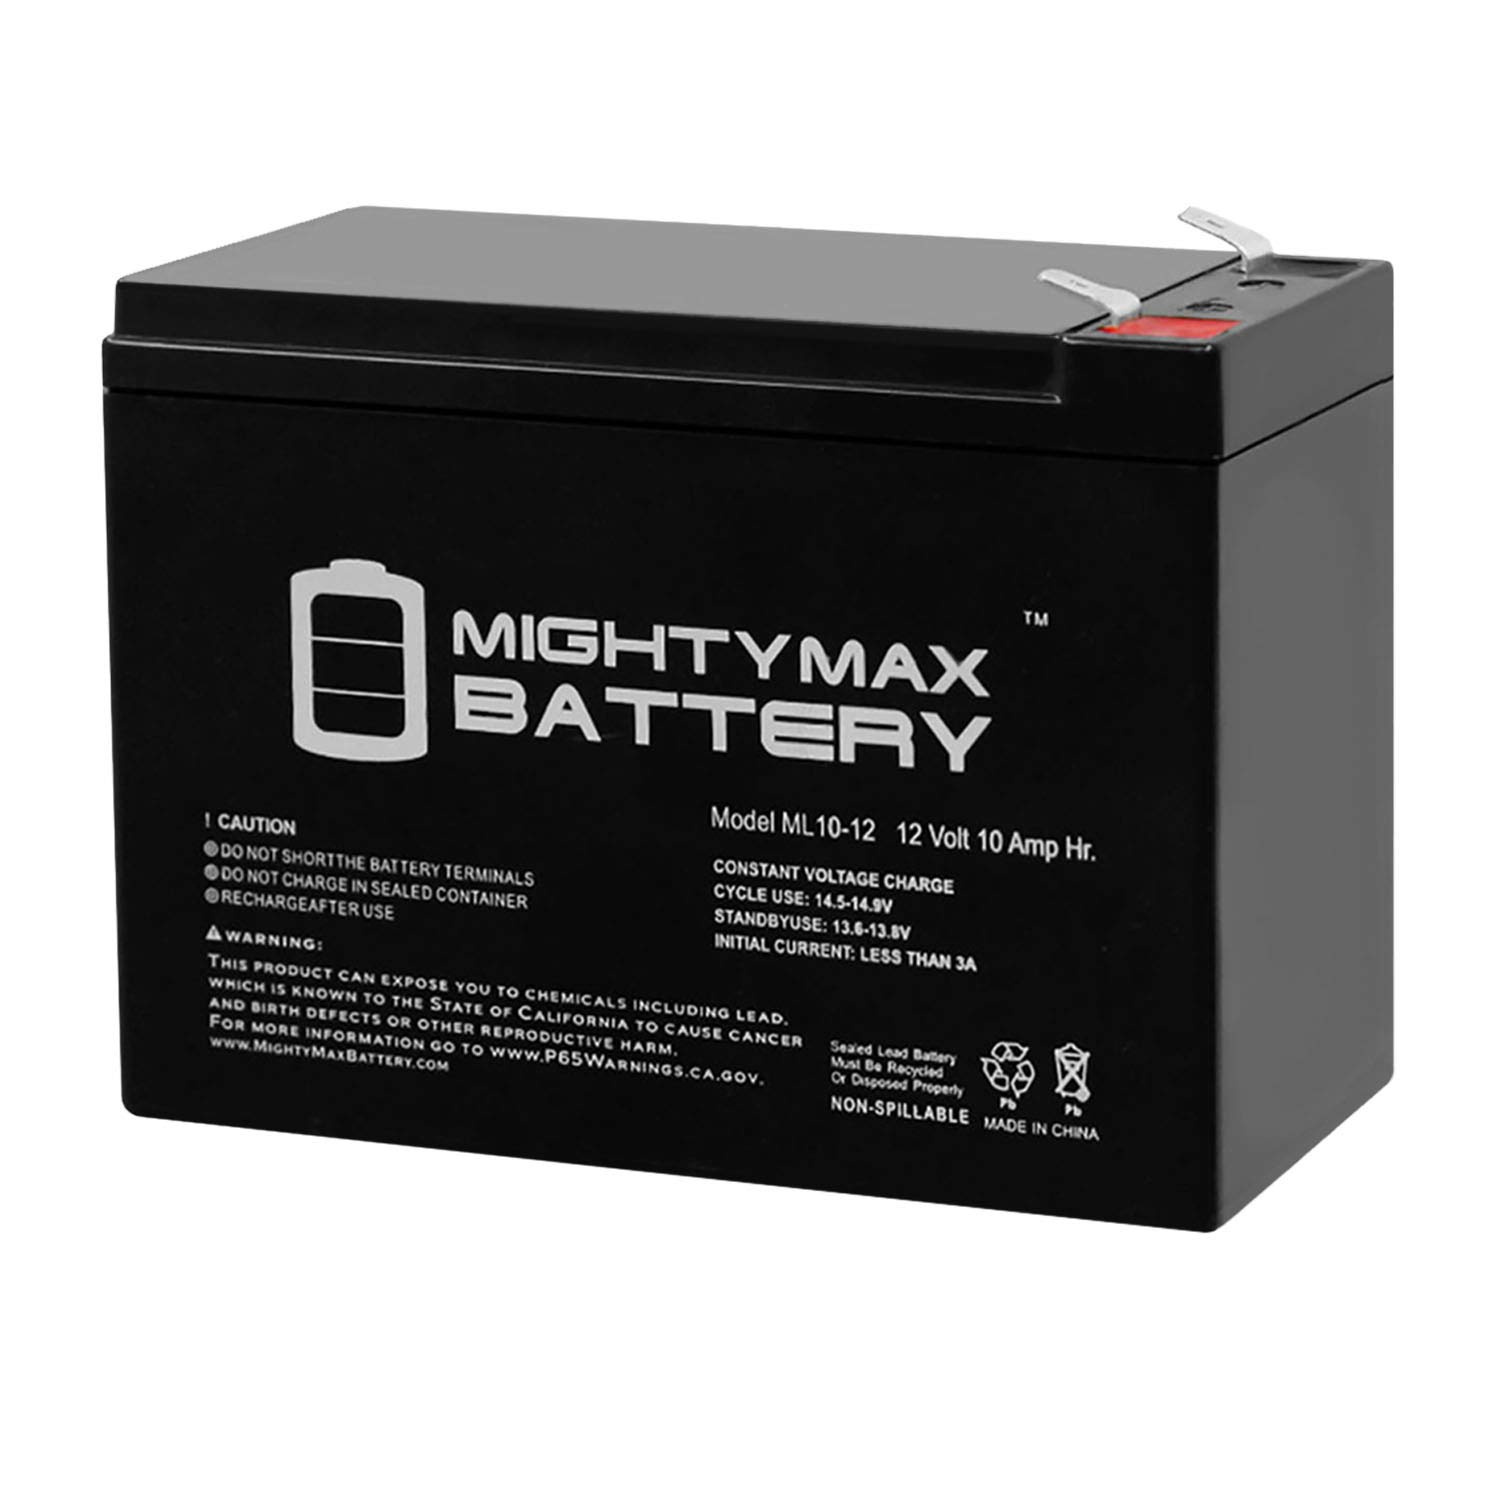 ML10-12 - 12 Volt 10 Ah SLA Battery - Mighty Max Battery Brand Product